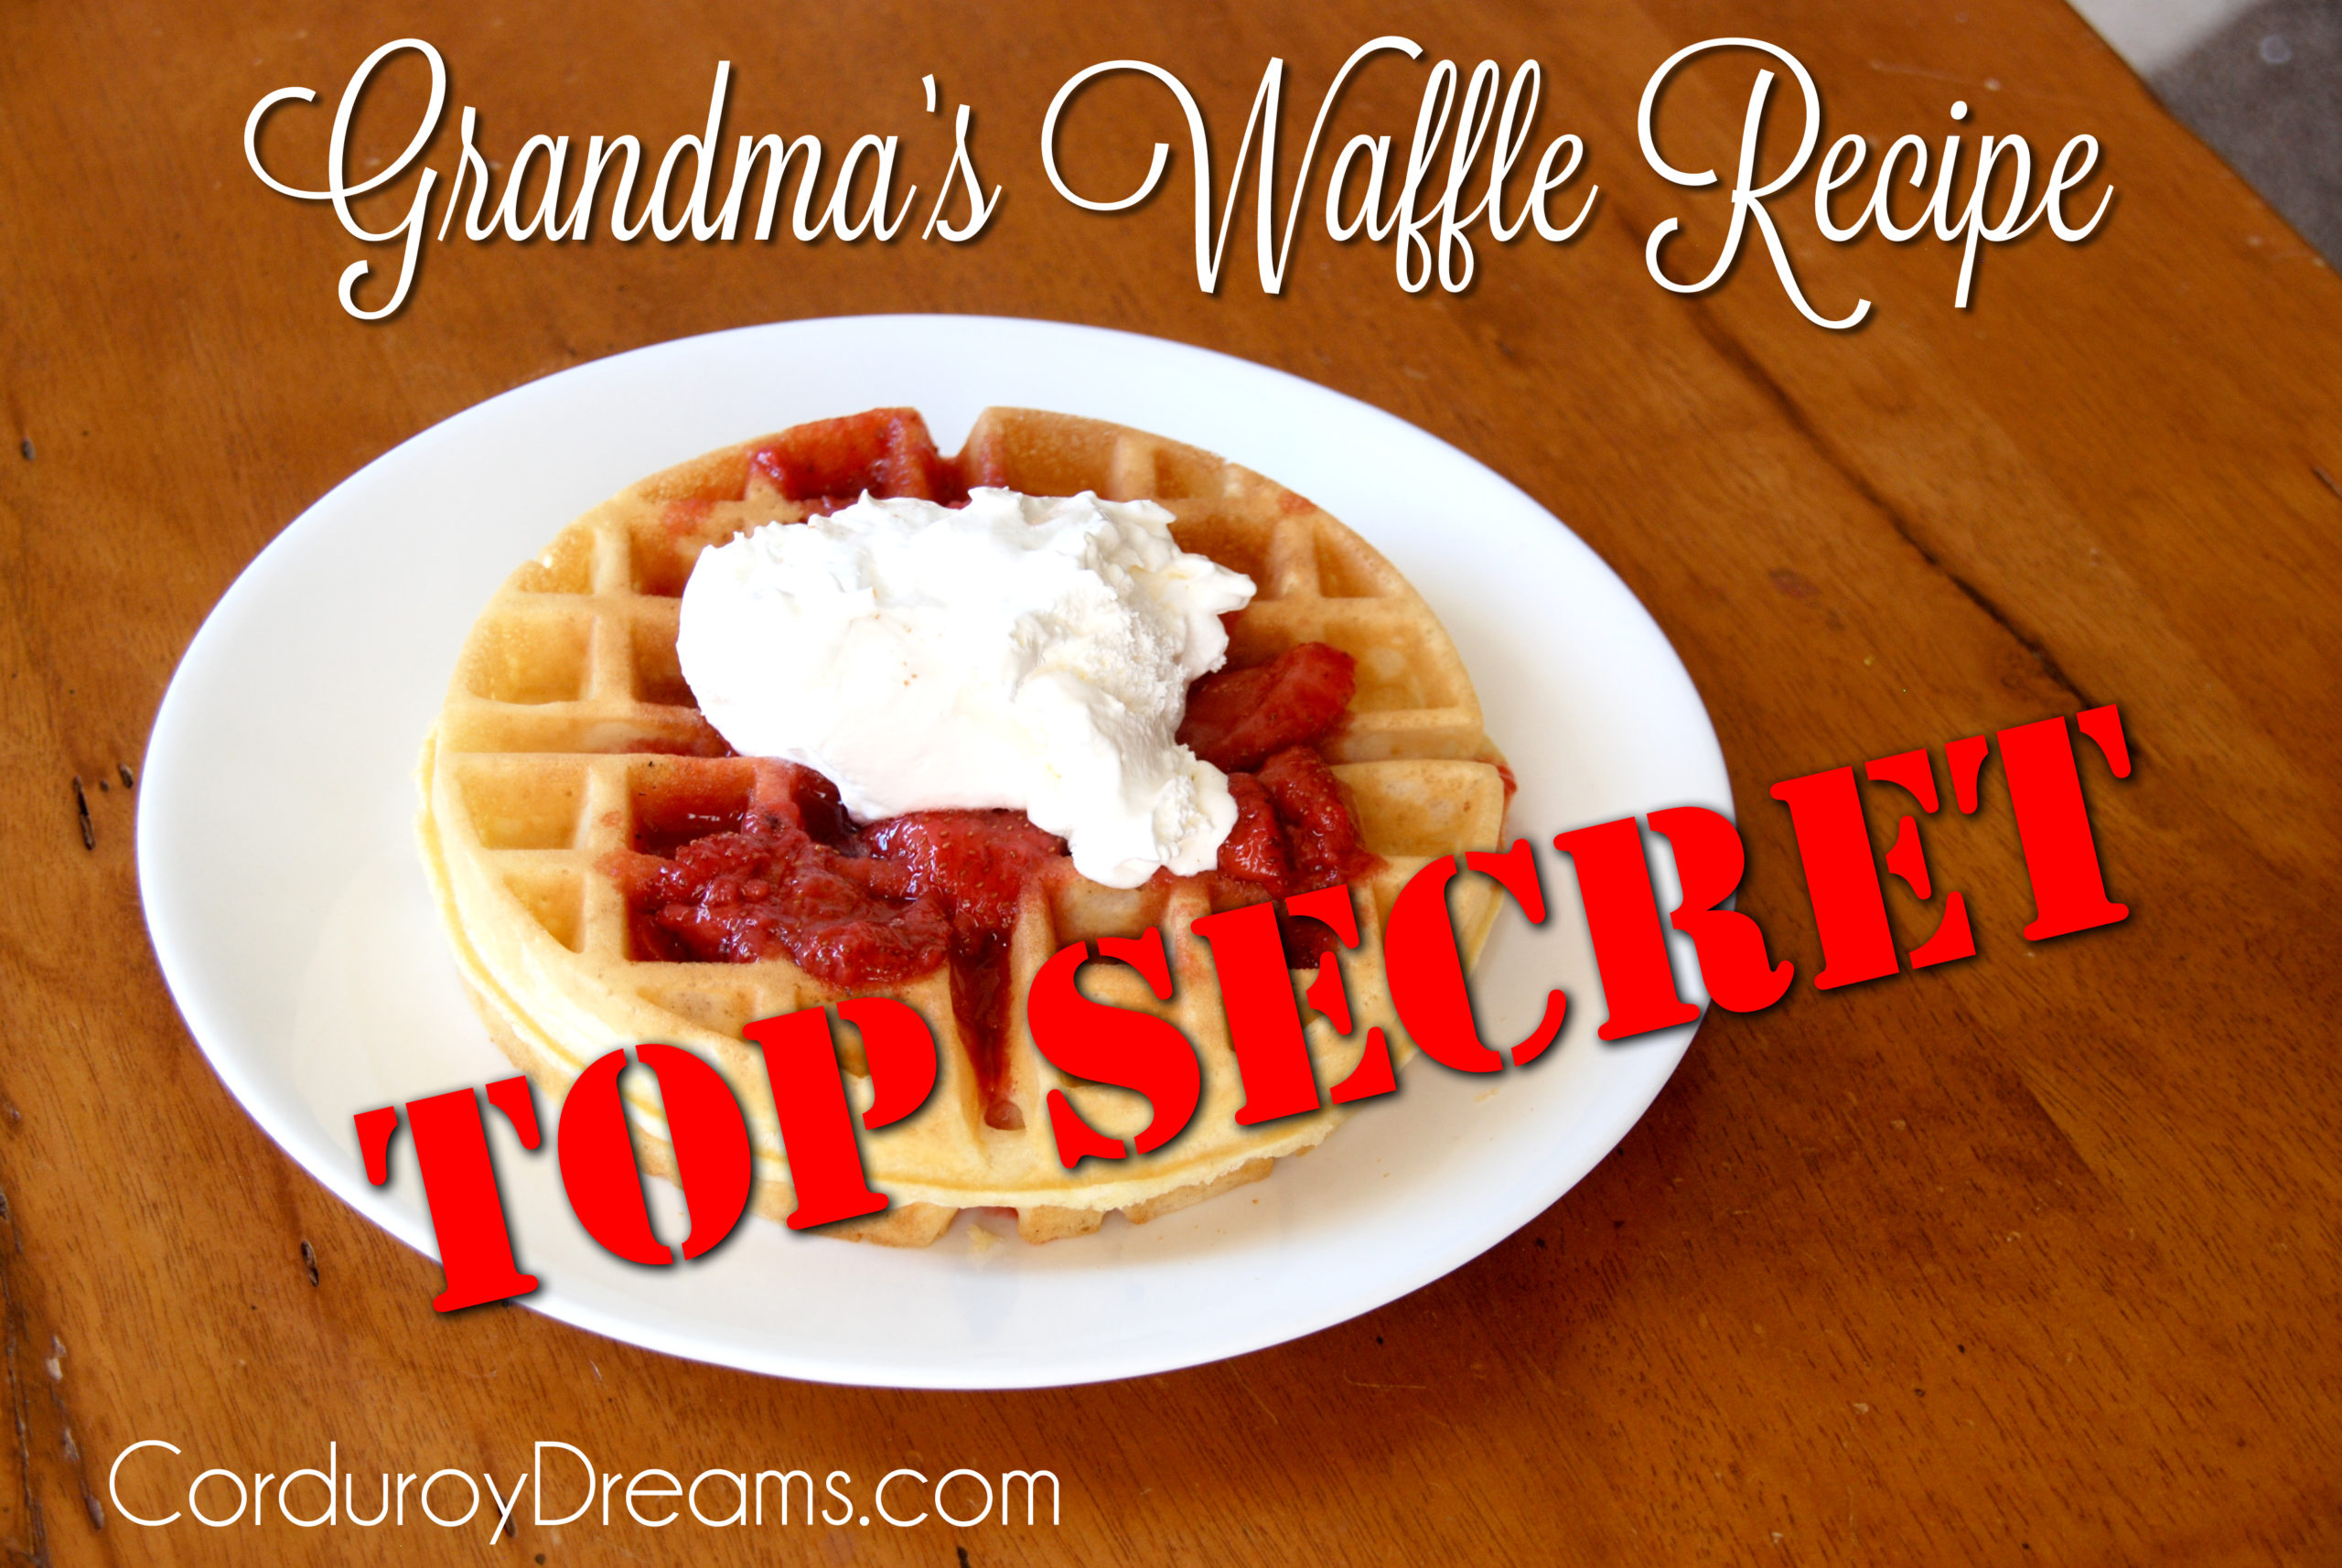 Homemade Waffle Recipe (with Strawberry Sauce)